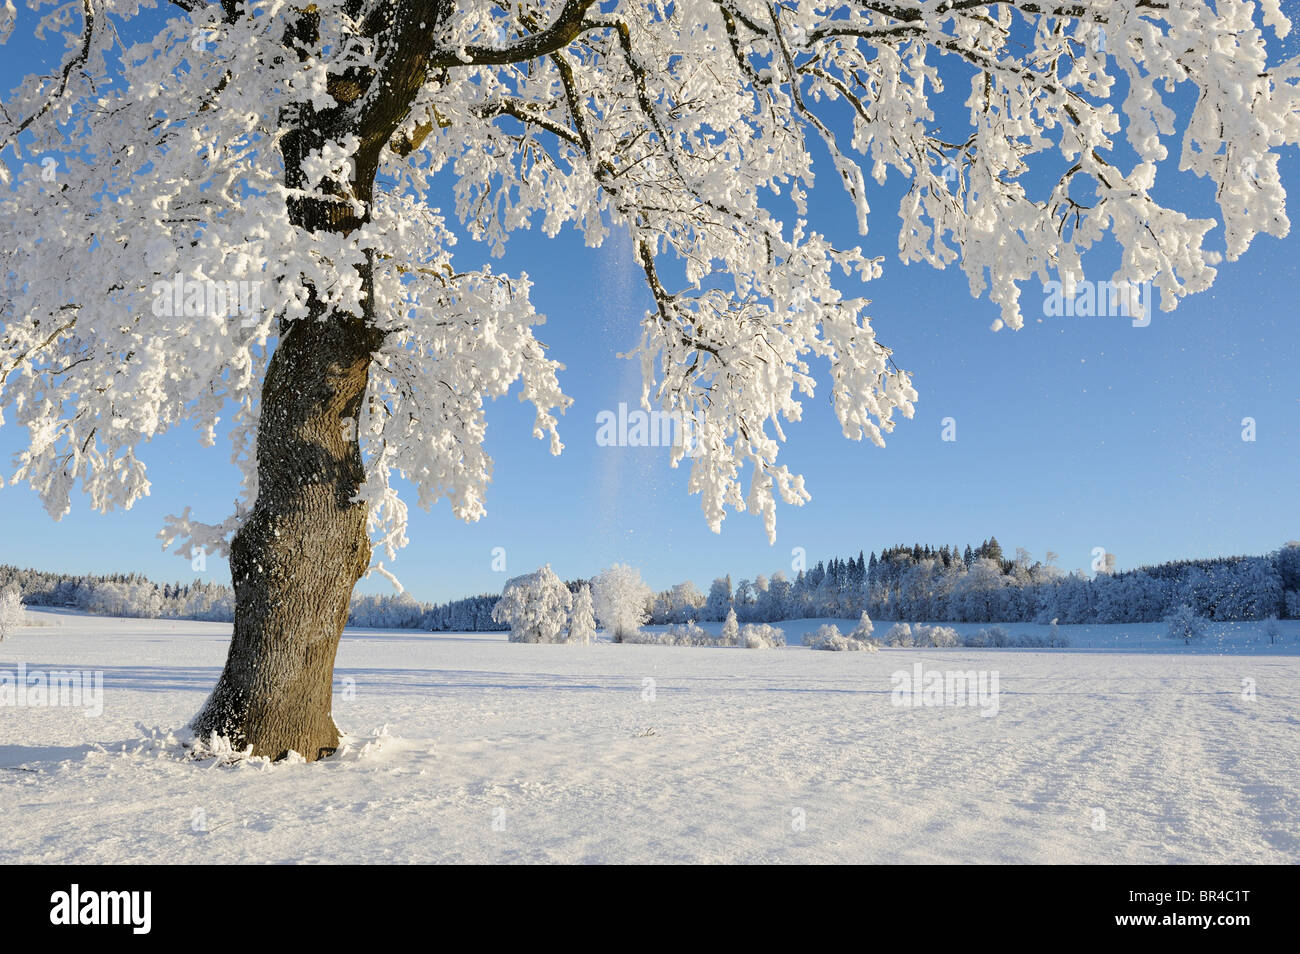 Pedunculate Oak (Quercus robur), coated with white frost, Lindeberg, Aargau, Switzerland, Europe - Stock Image